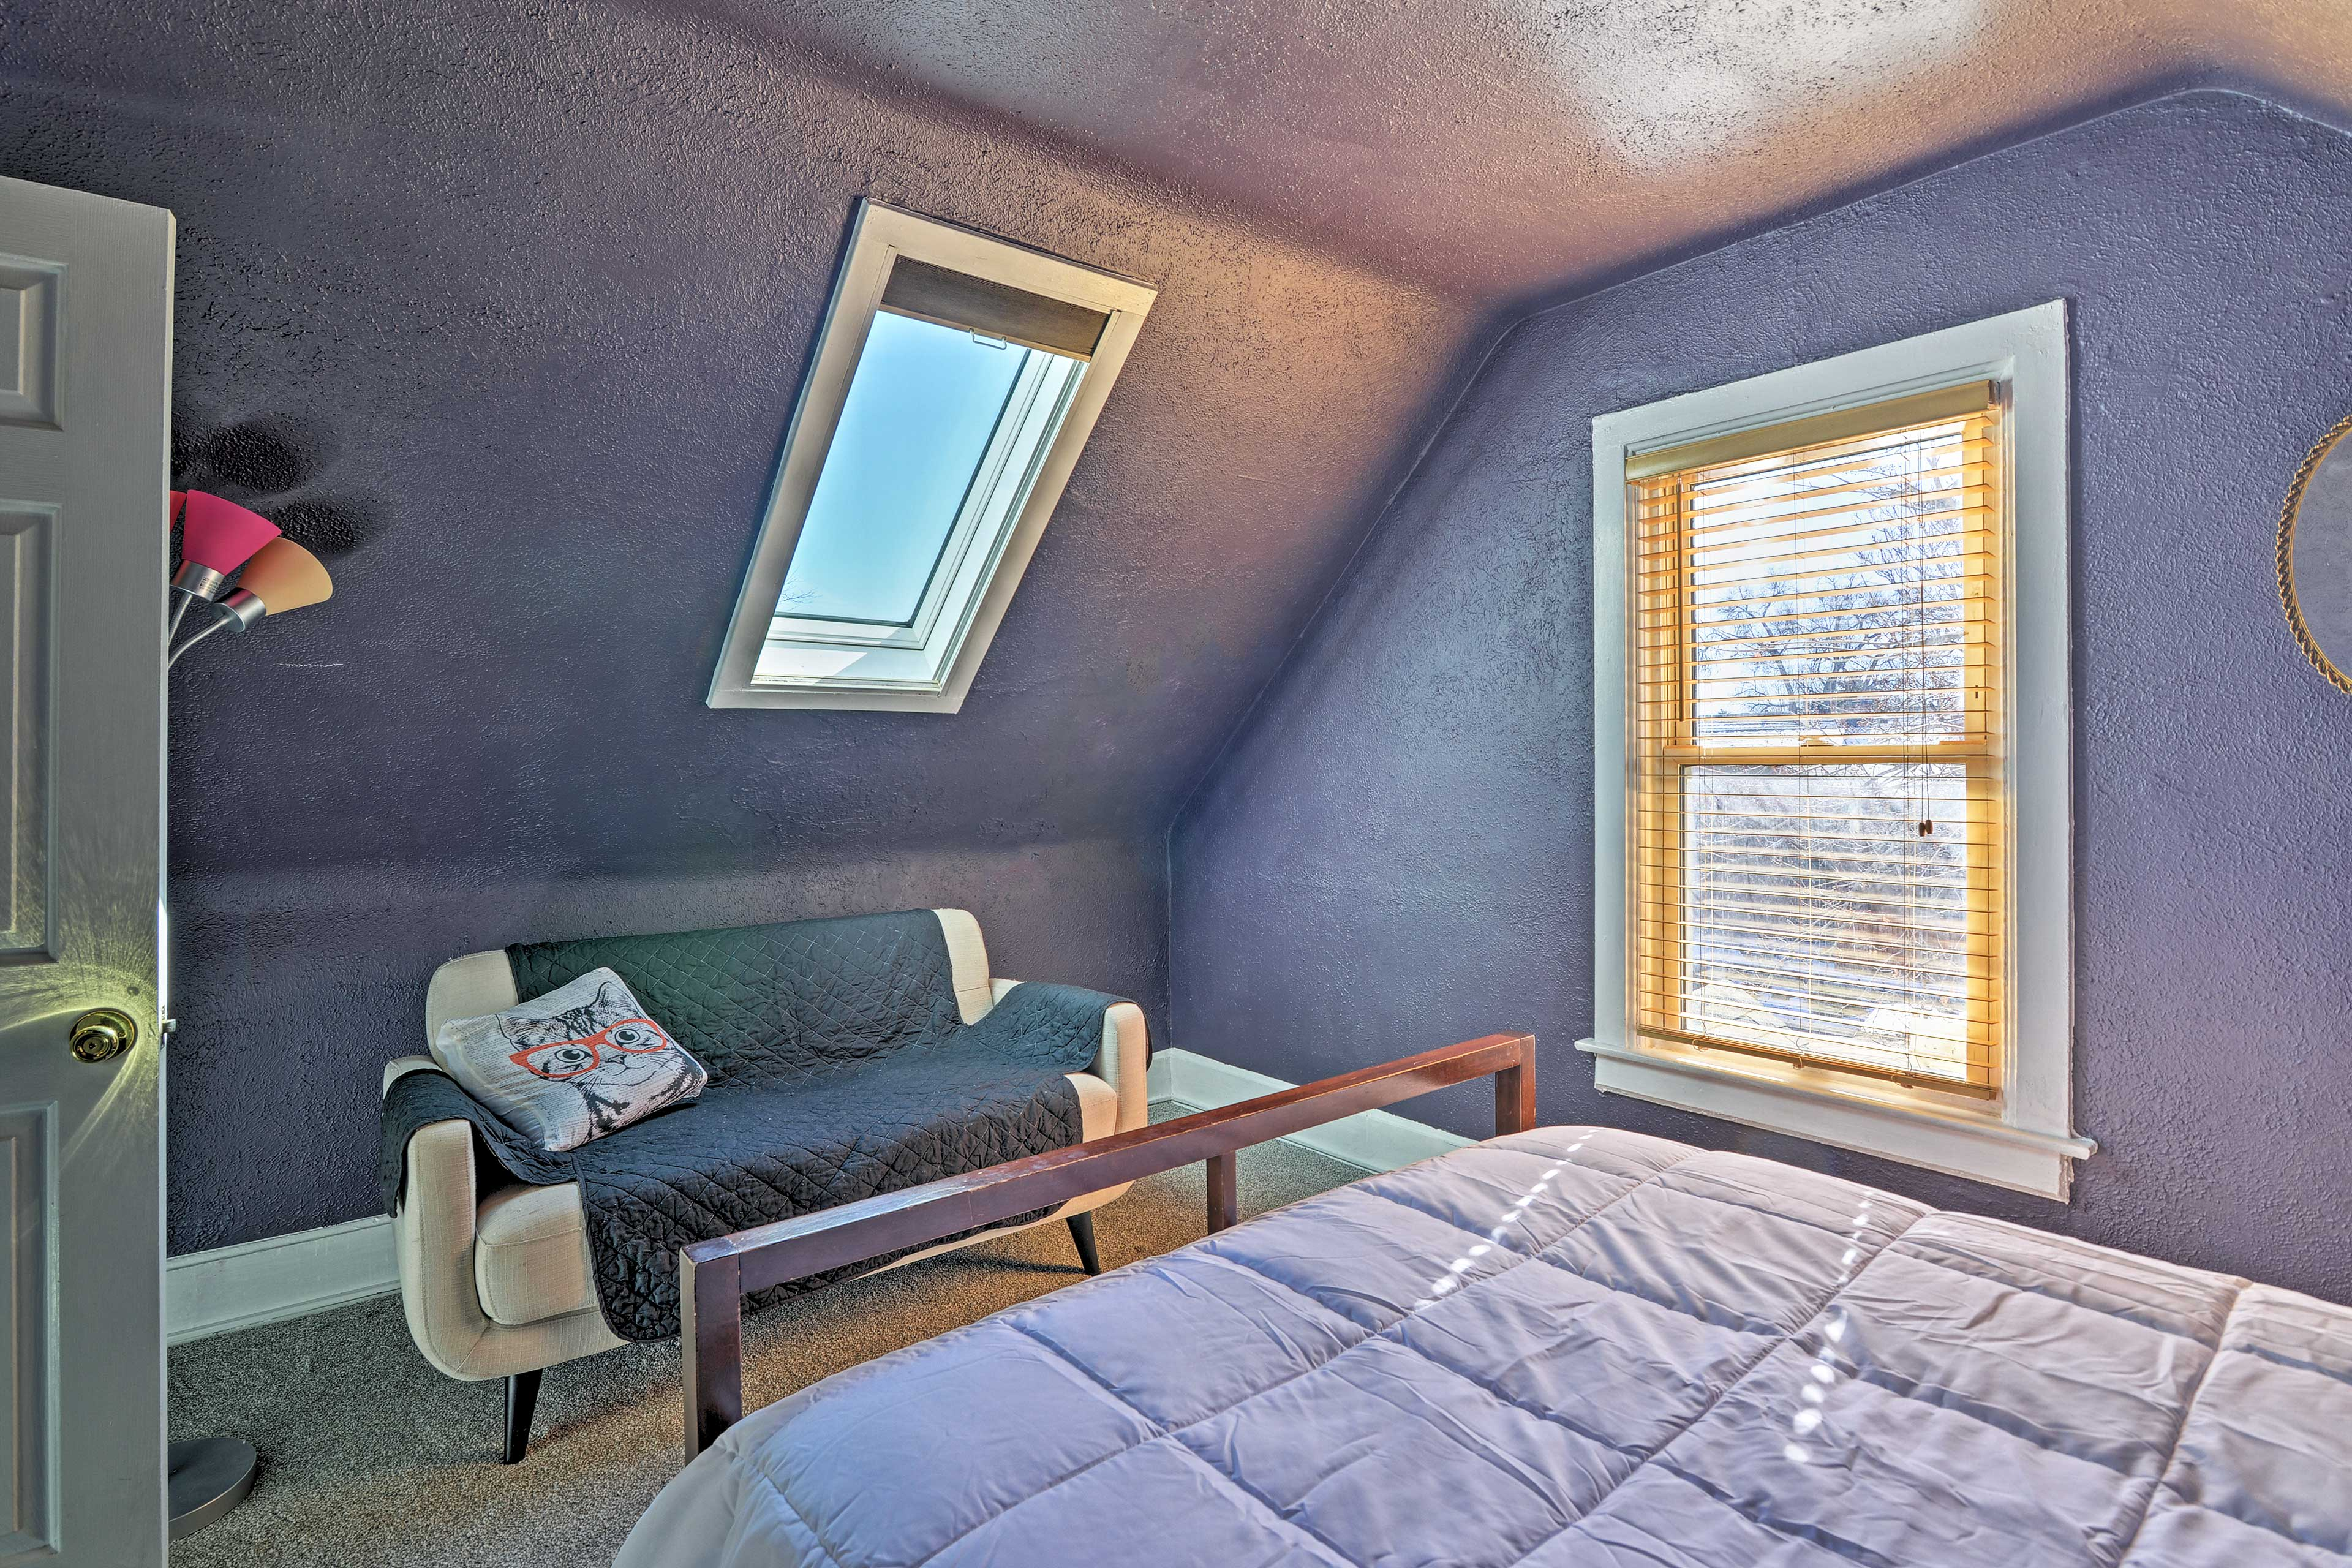 Wake up to natural sunlight from the skylight!